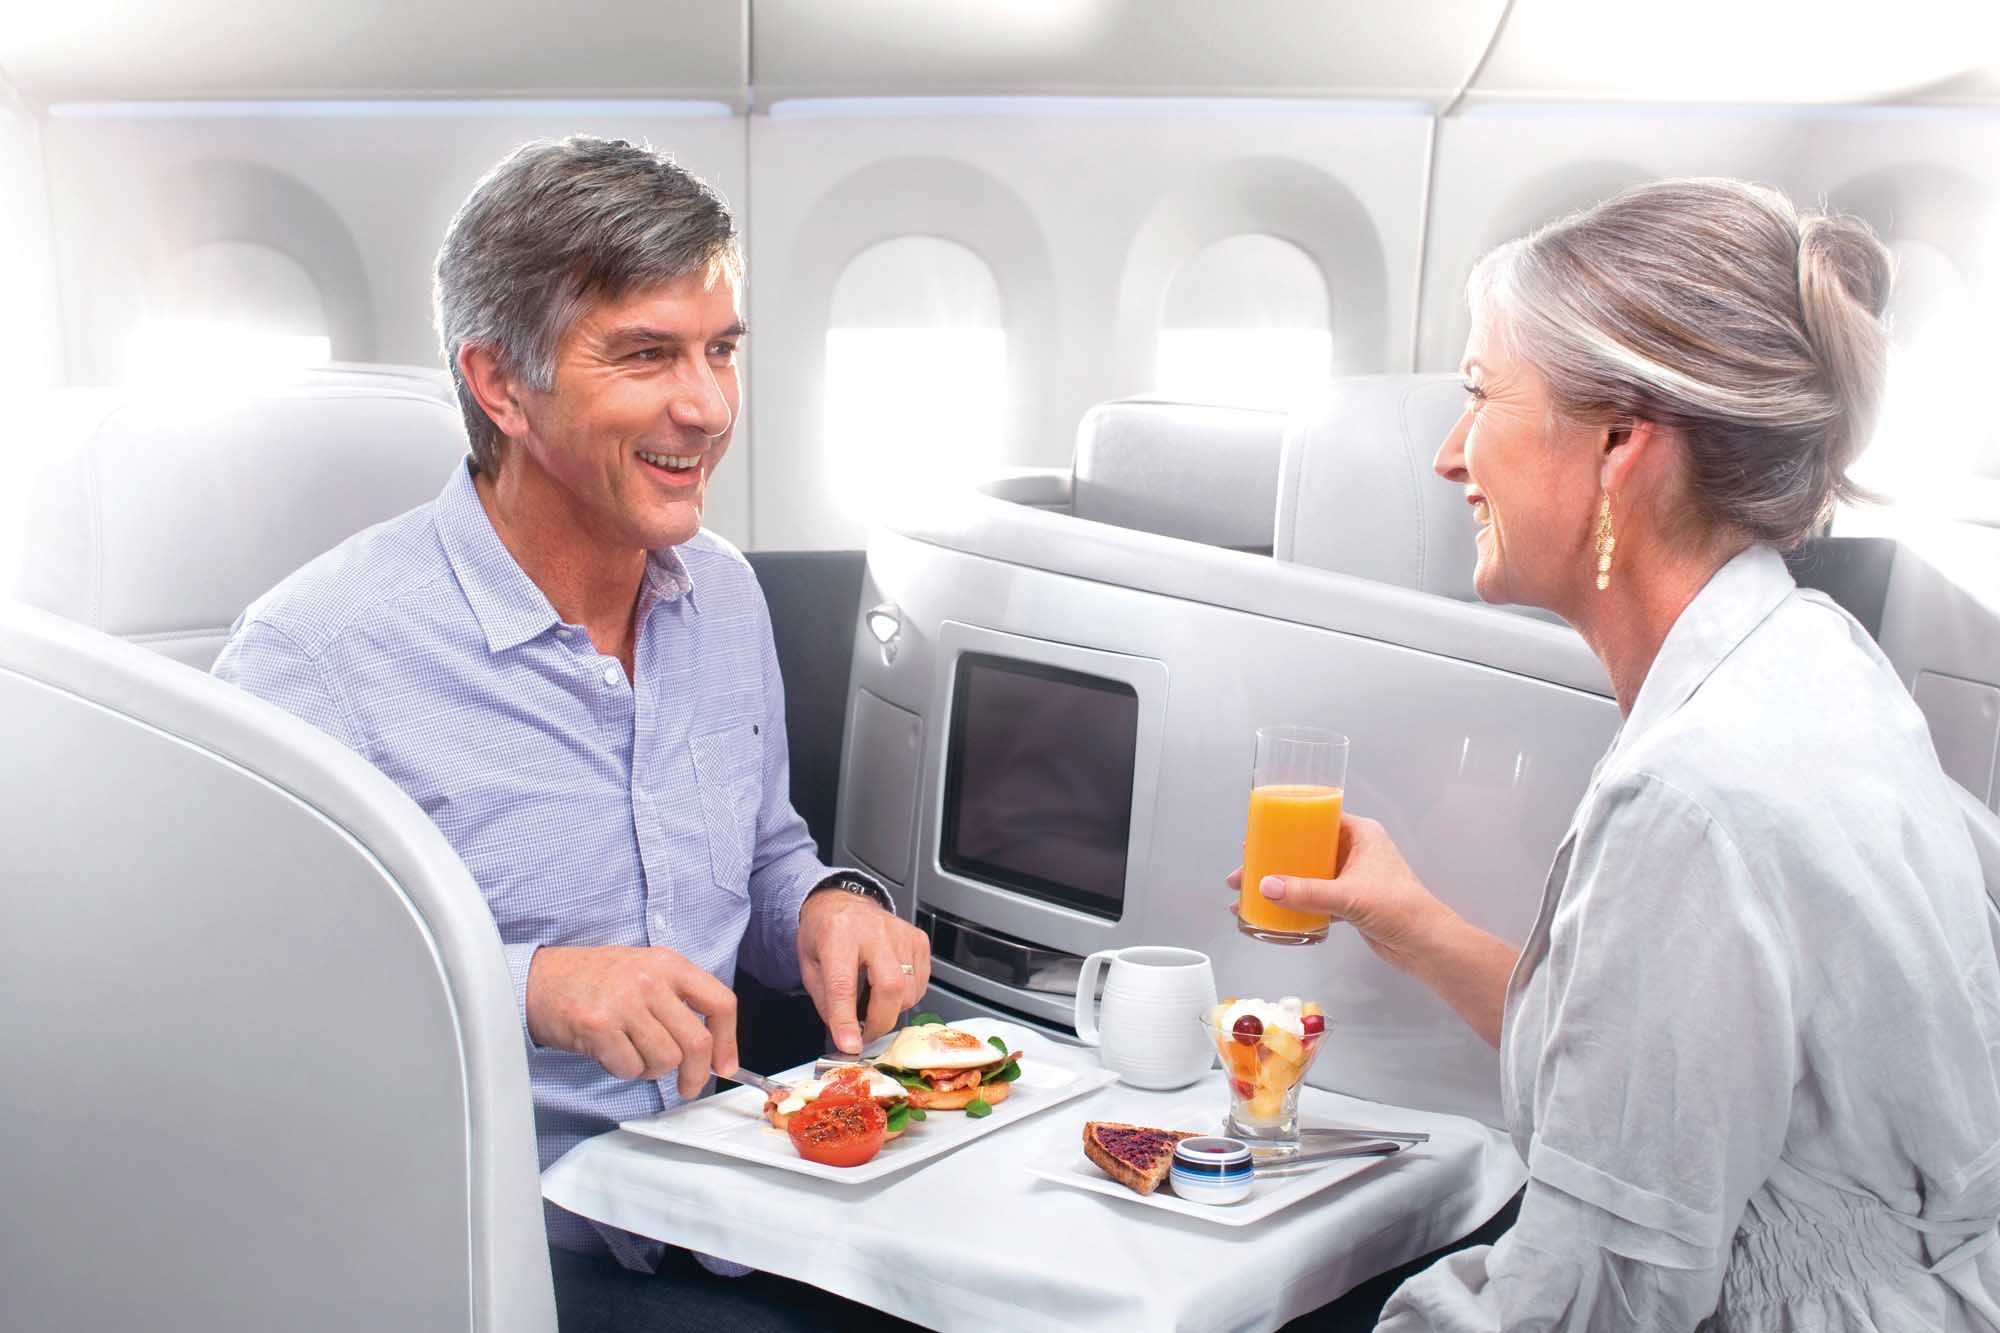 Air New Zealand B777-300ER business class    http://www.businesstraveller.com/tried-and-tested/airlines/air-new-zealand/air-new-zealand-b777-300er-business